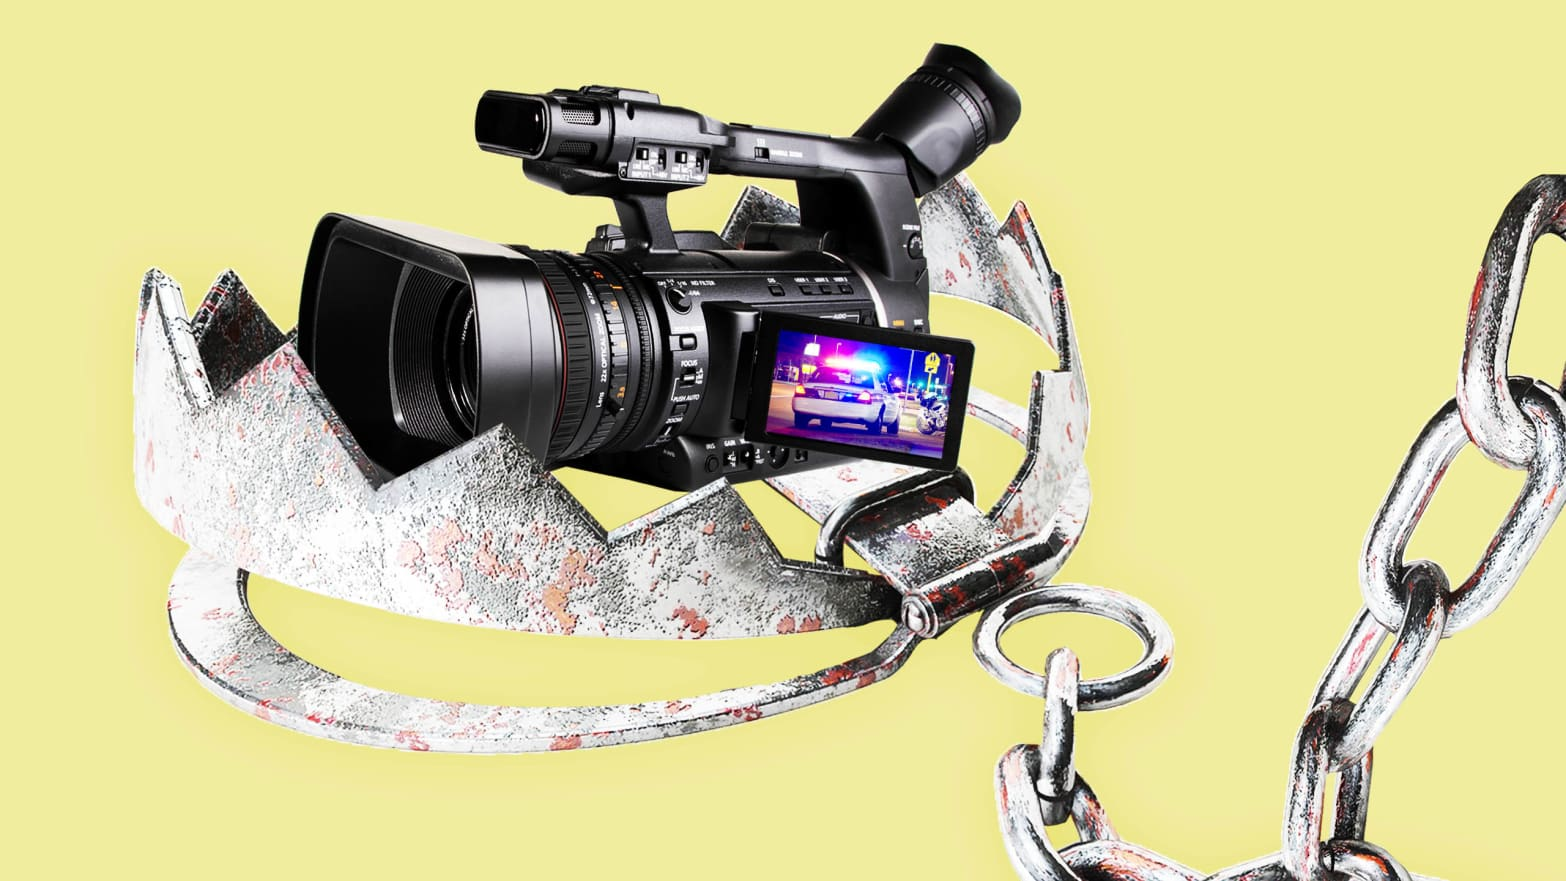 The Insane New Path to YouTube Fame: Taunt Cops and Film It